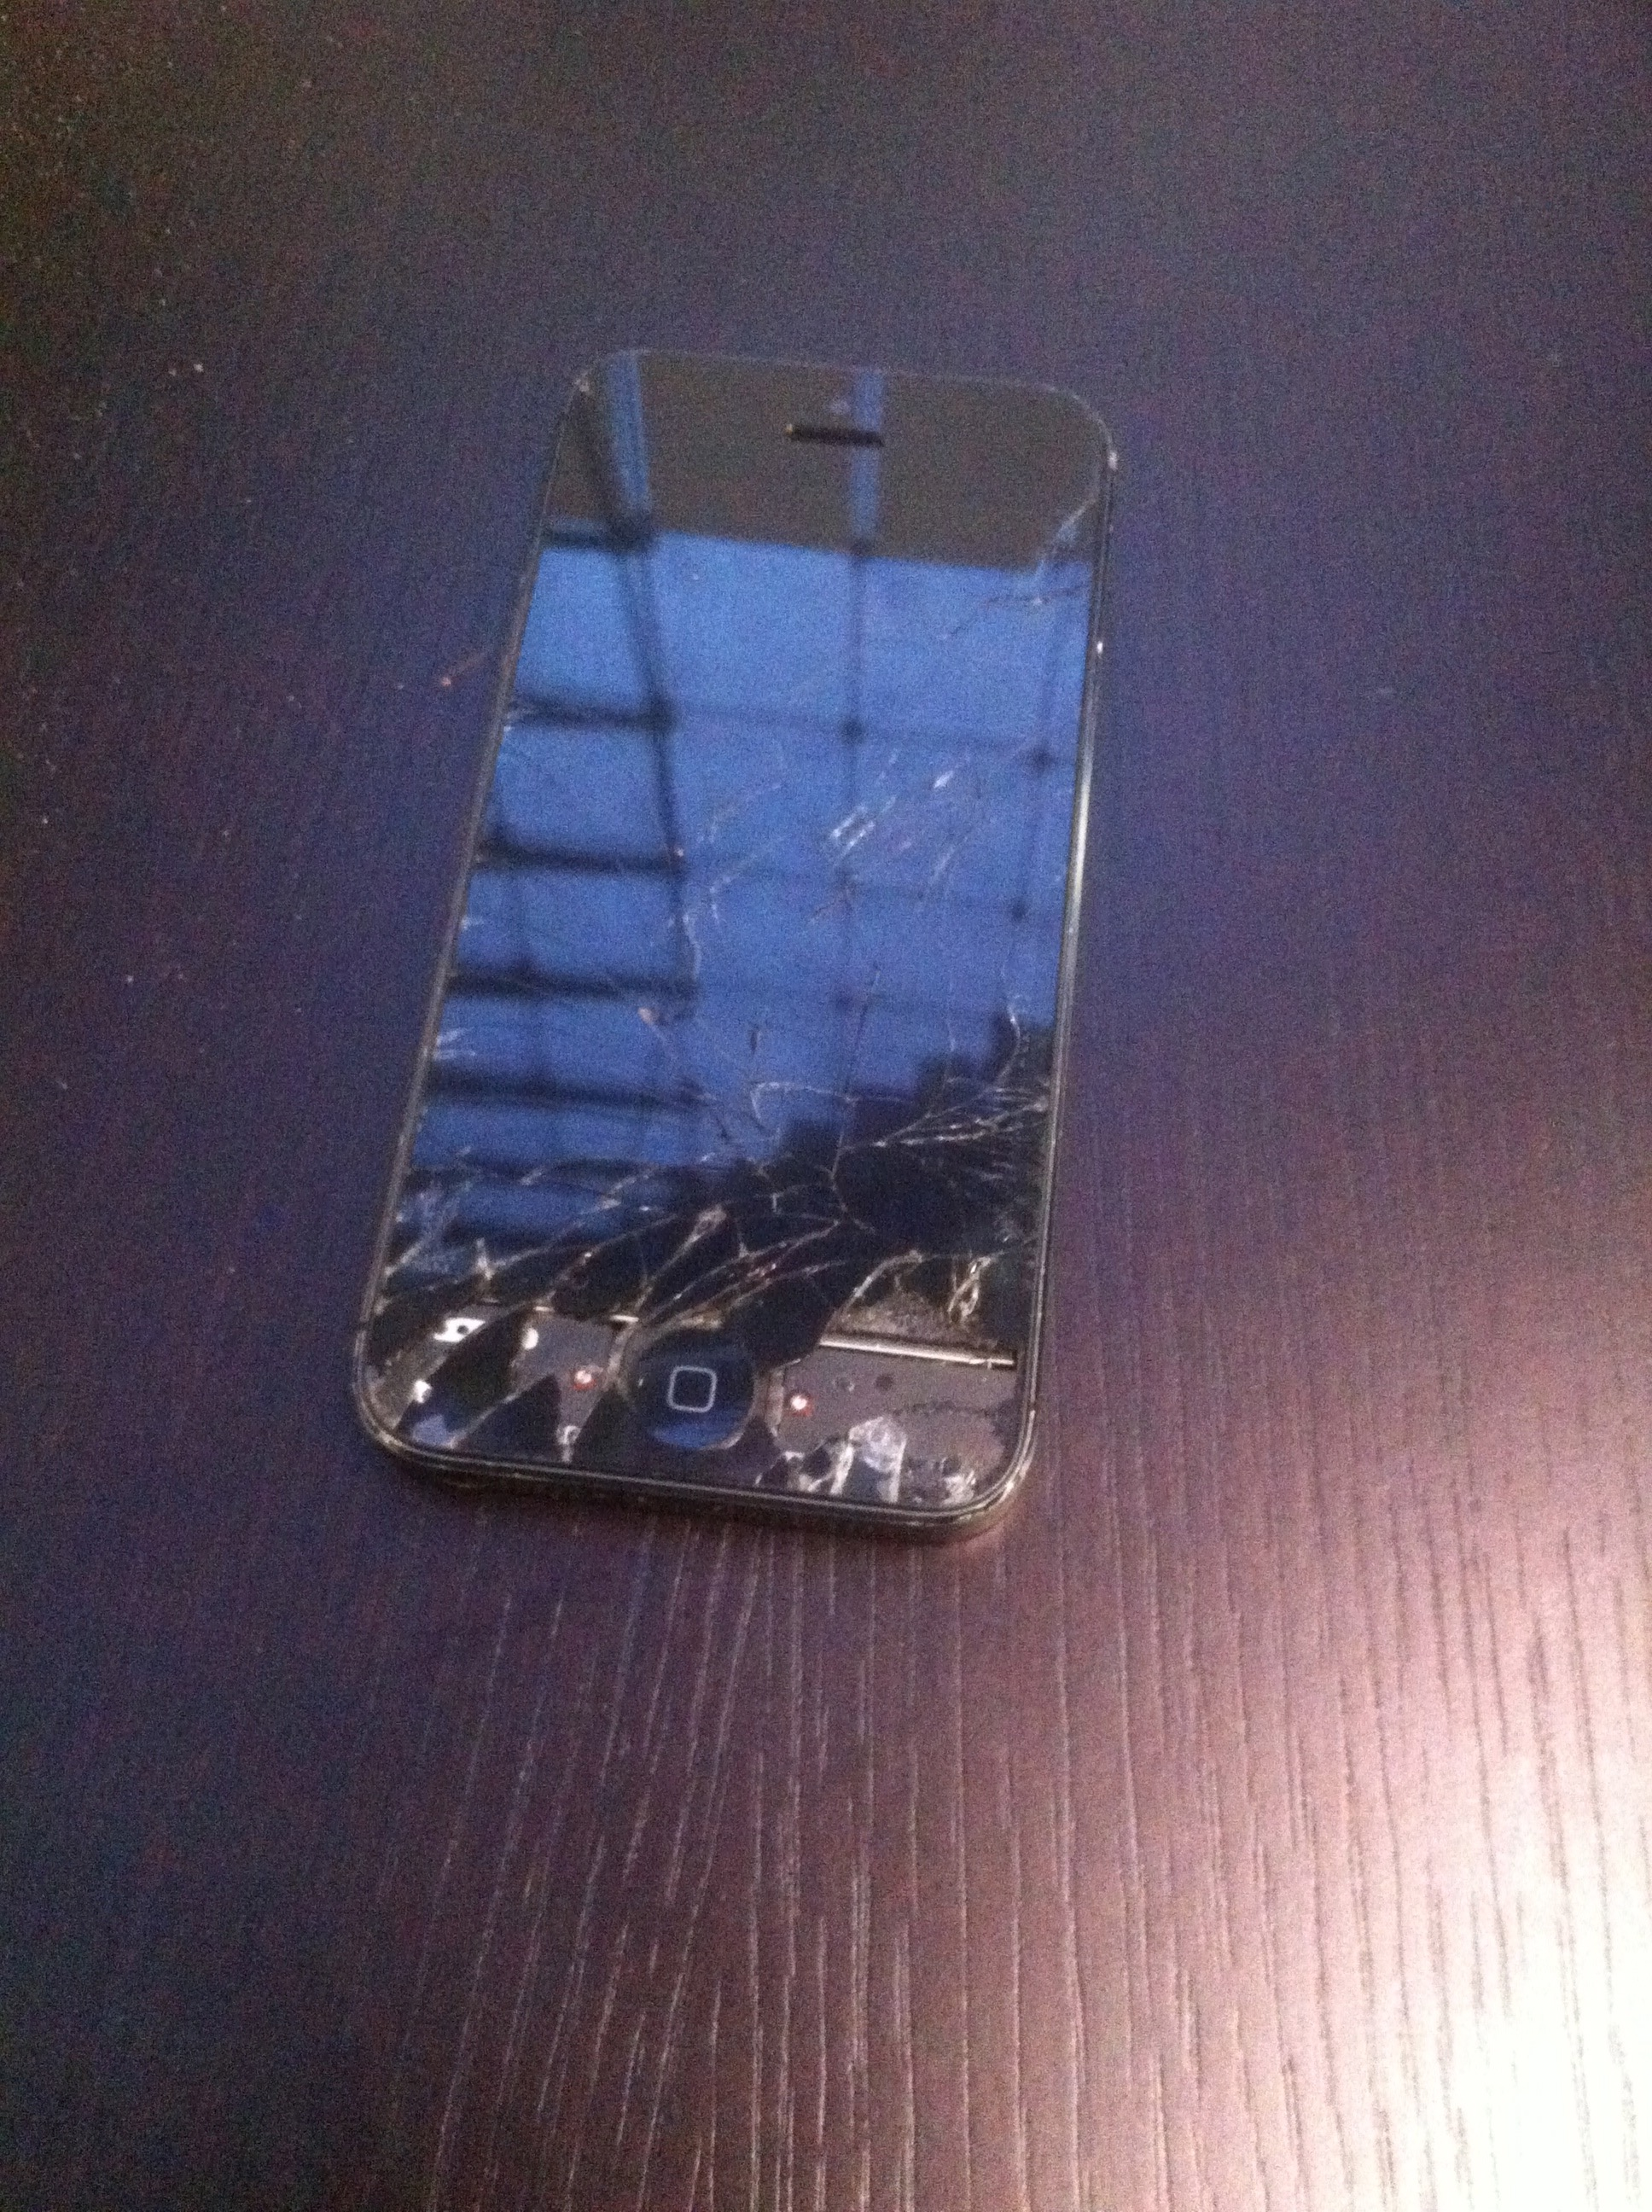 Broken iPhone 5 in Need of Some Serious Help